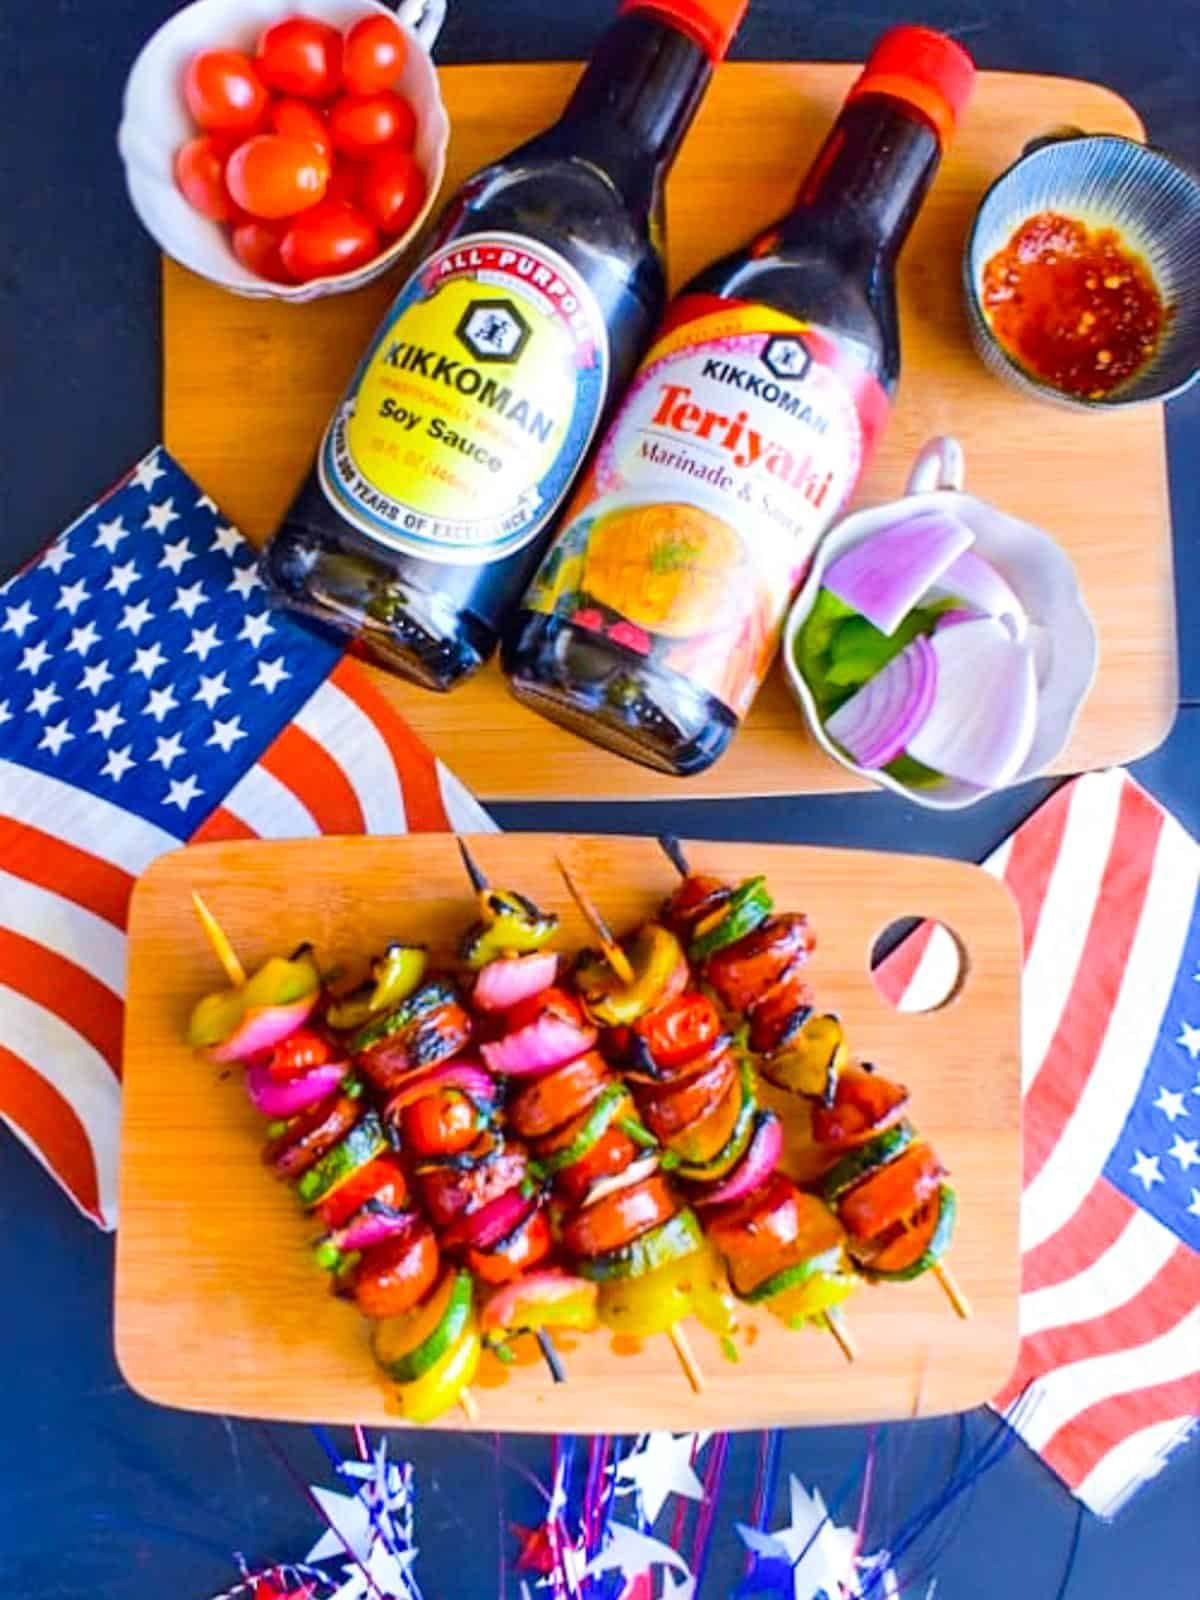 A cutting board with bright colored kebabs with vegetables and sausages at a July 4th party.